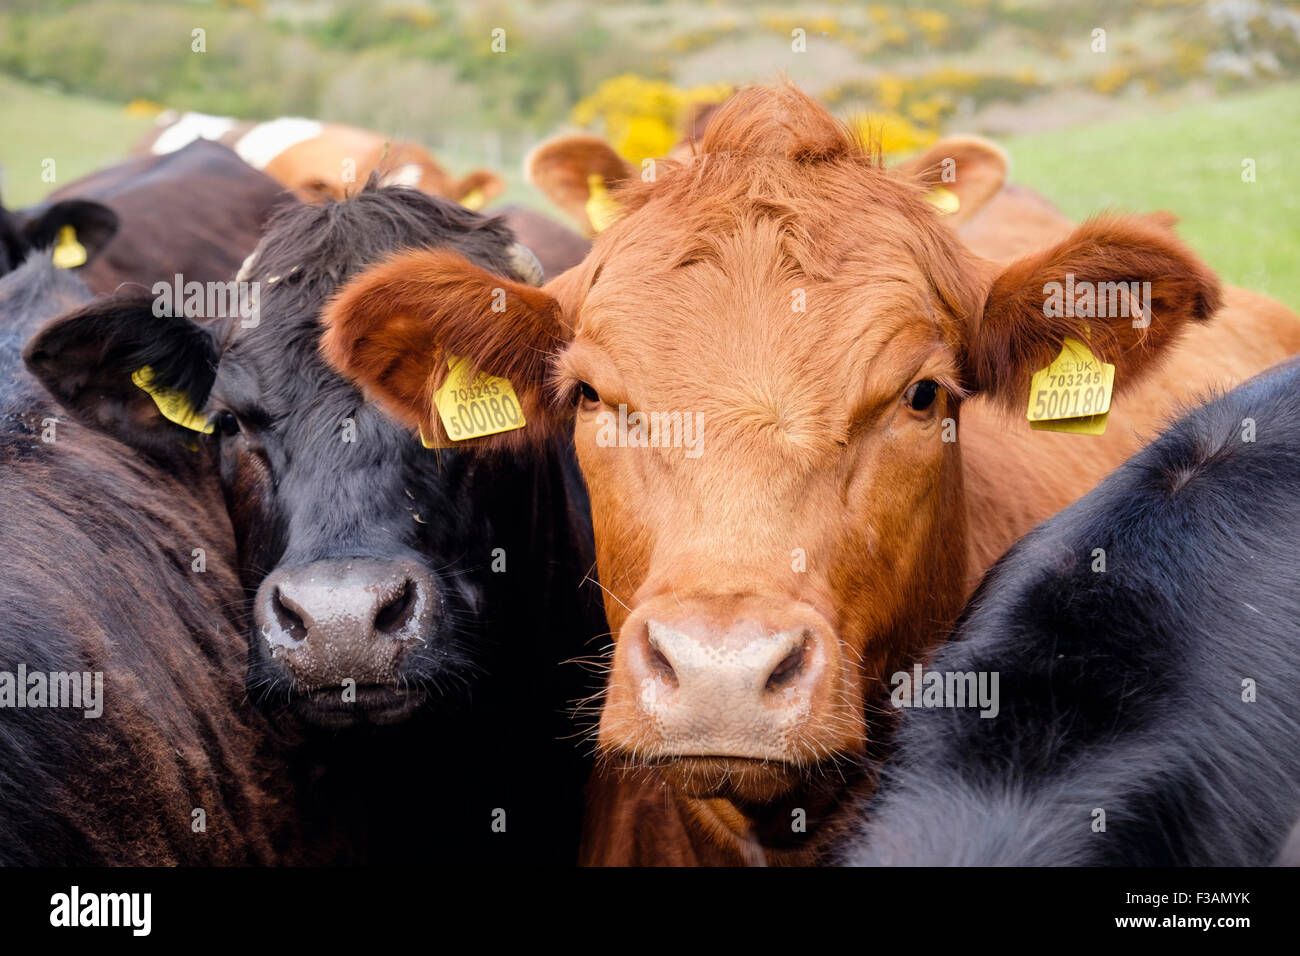 Inquisitive young bulls Bos taurus (cattle) with yellow ear tags on a farm. Wales, UK, Britain - Stock Image